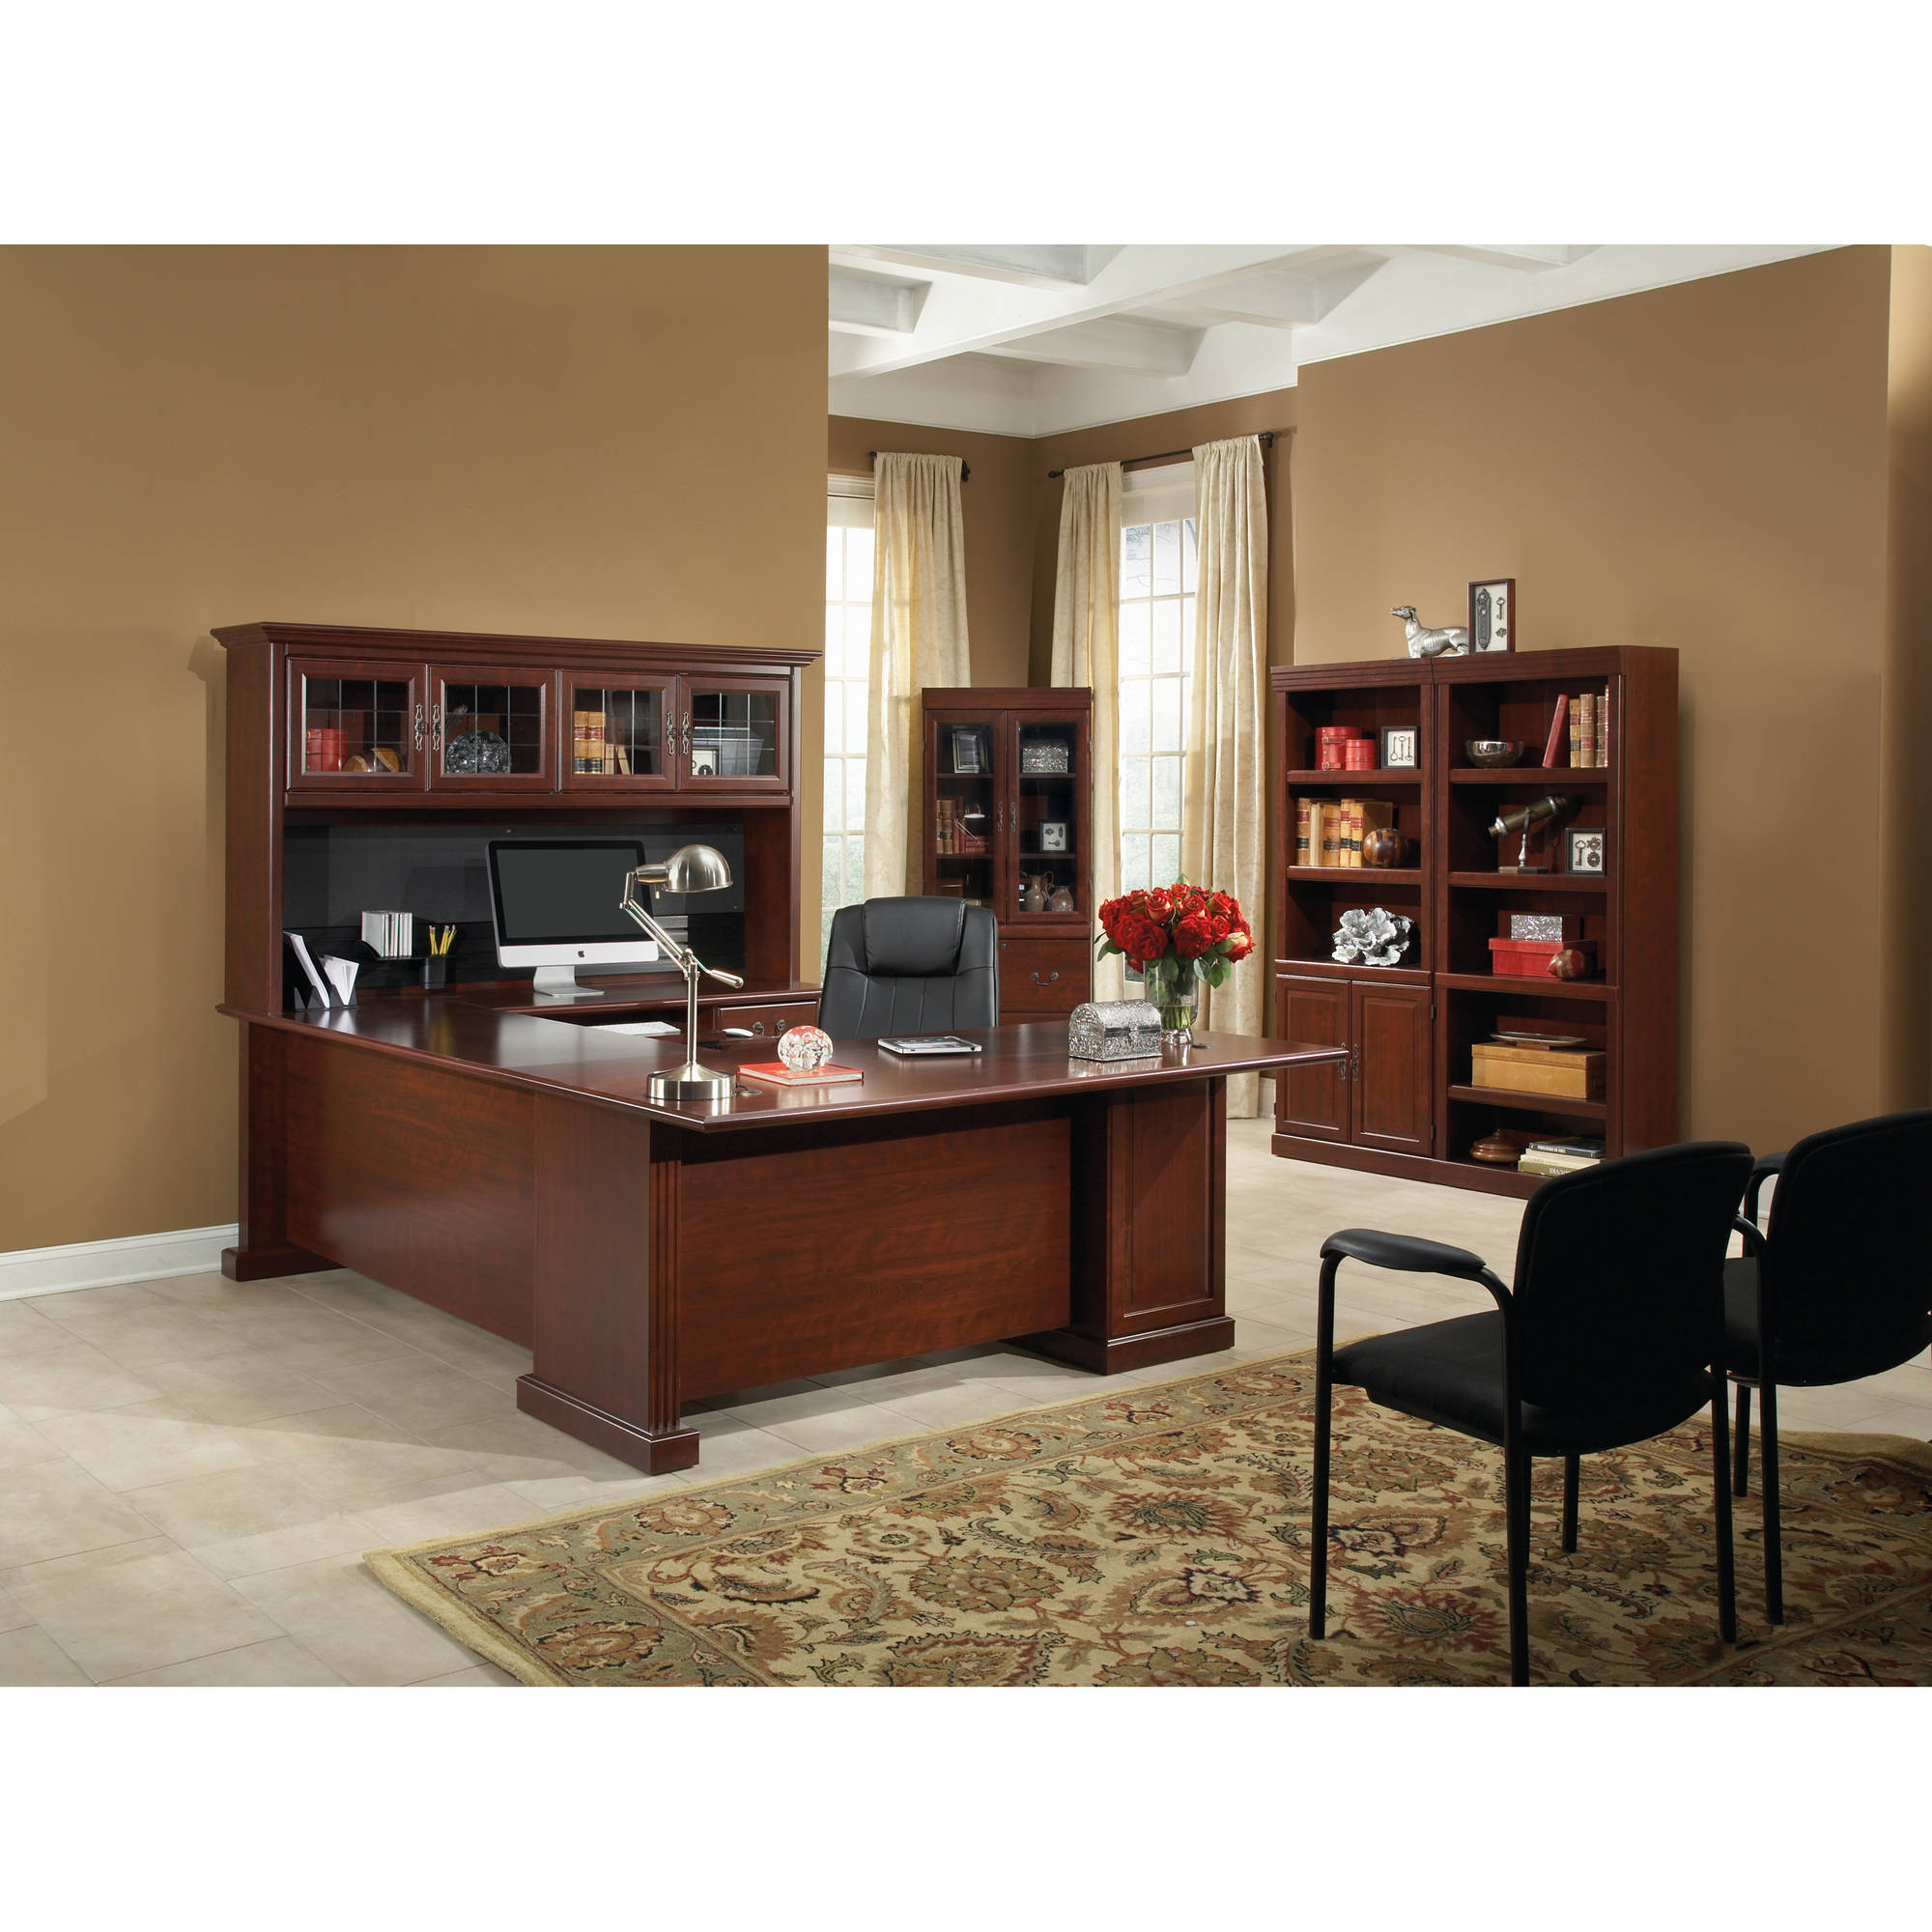 Sauder heritage hill executive desk classic cherry walmart com